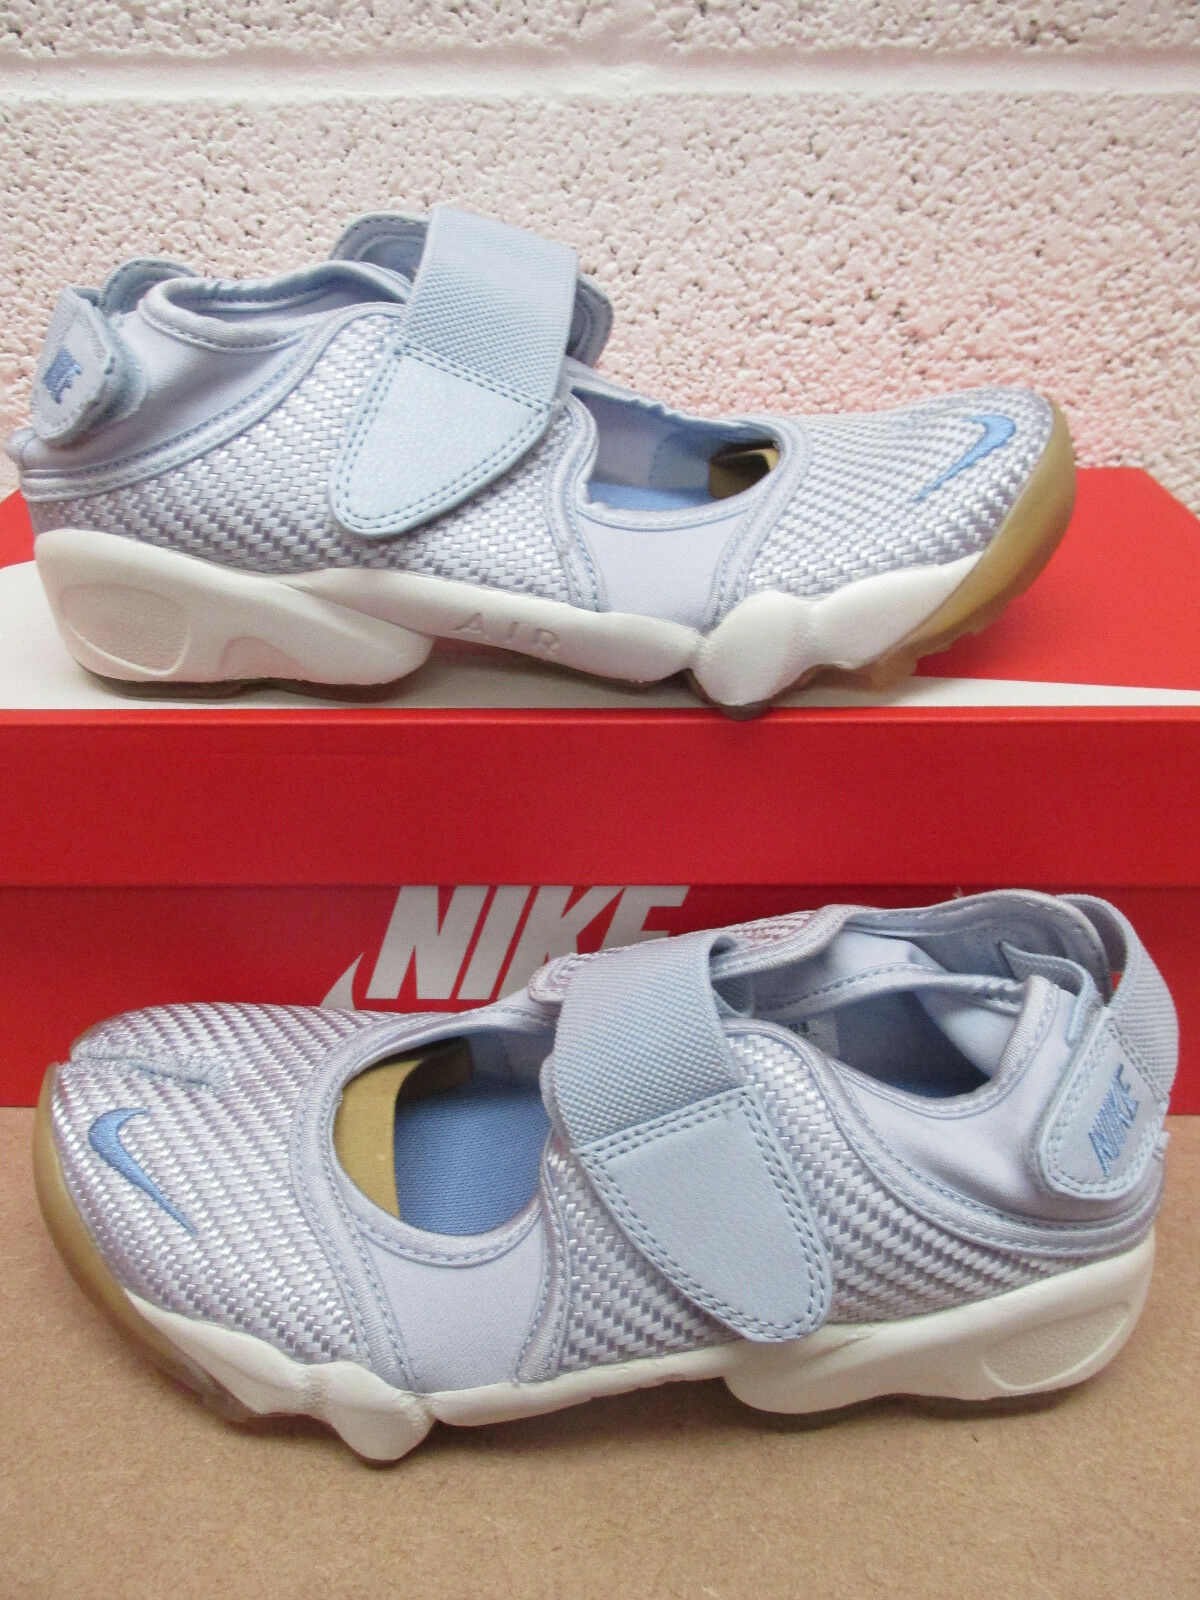 nike  Femme  air rift trainers 315766 403 sneakers  chaussures